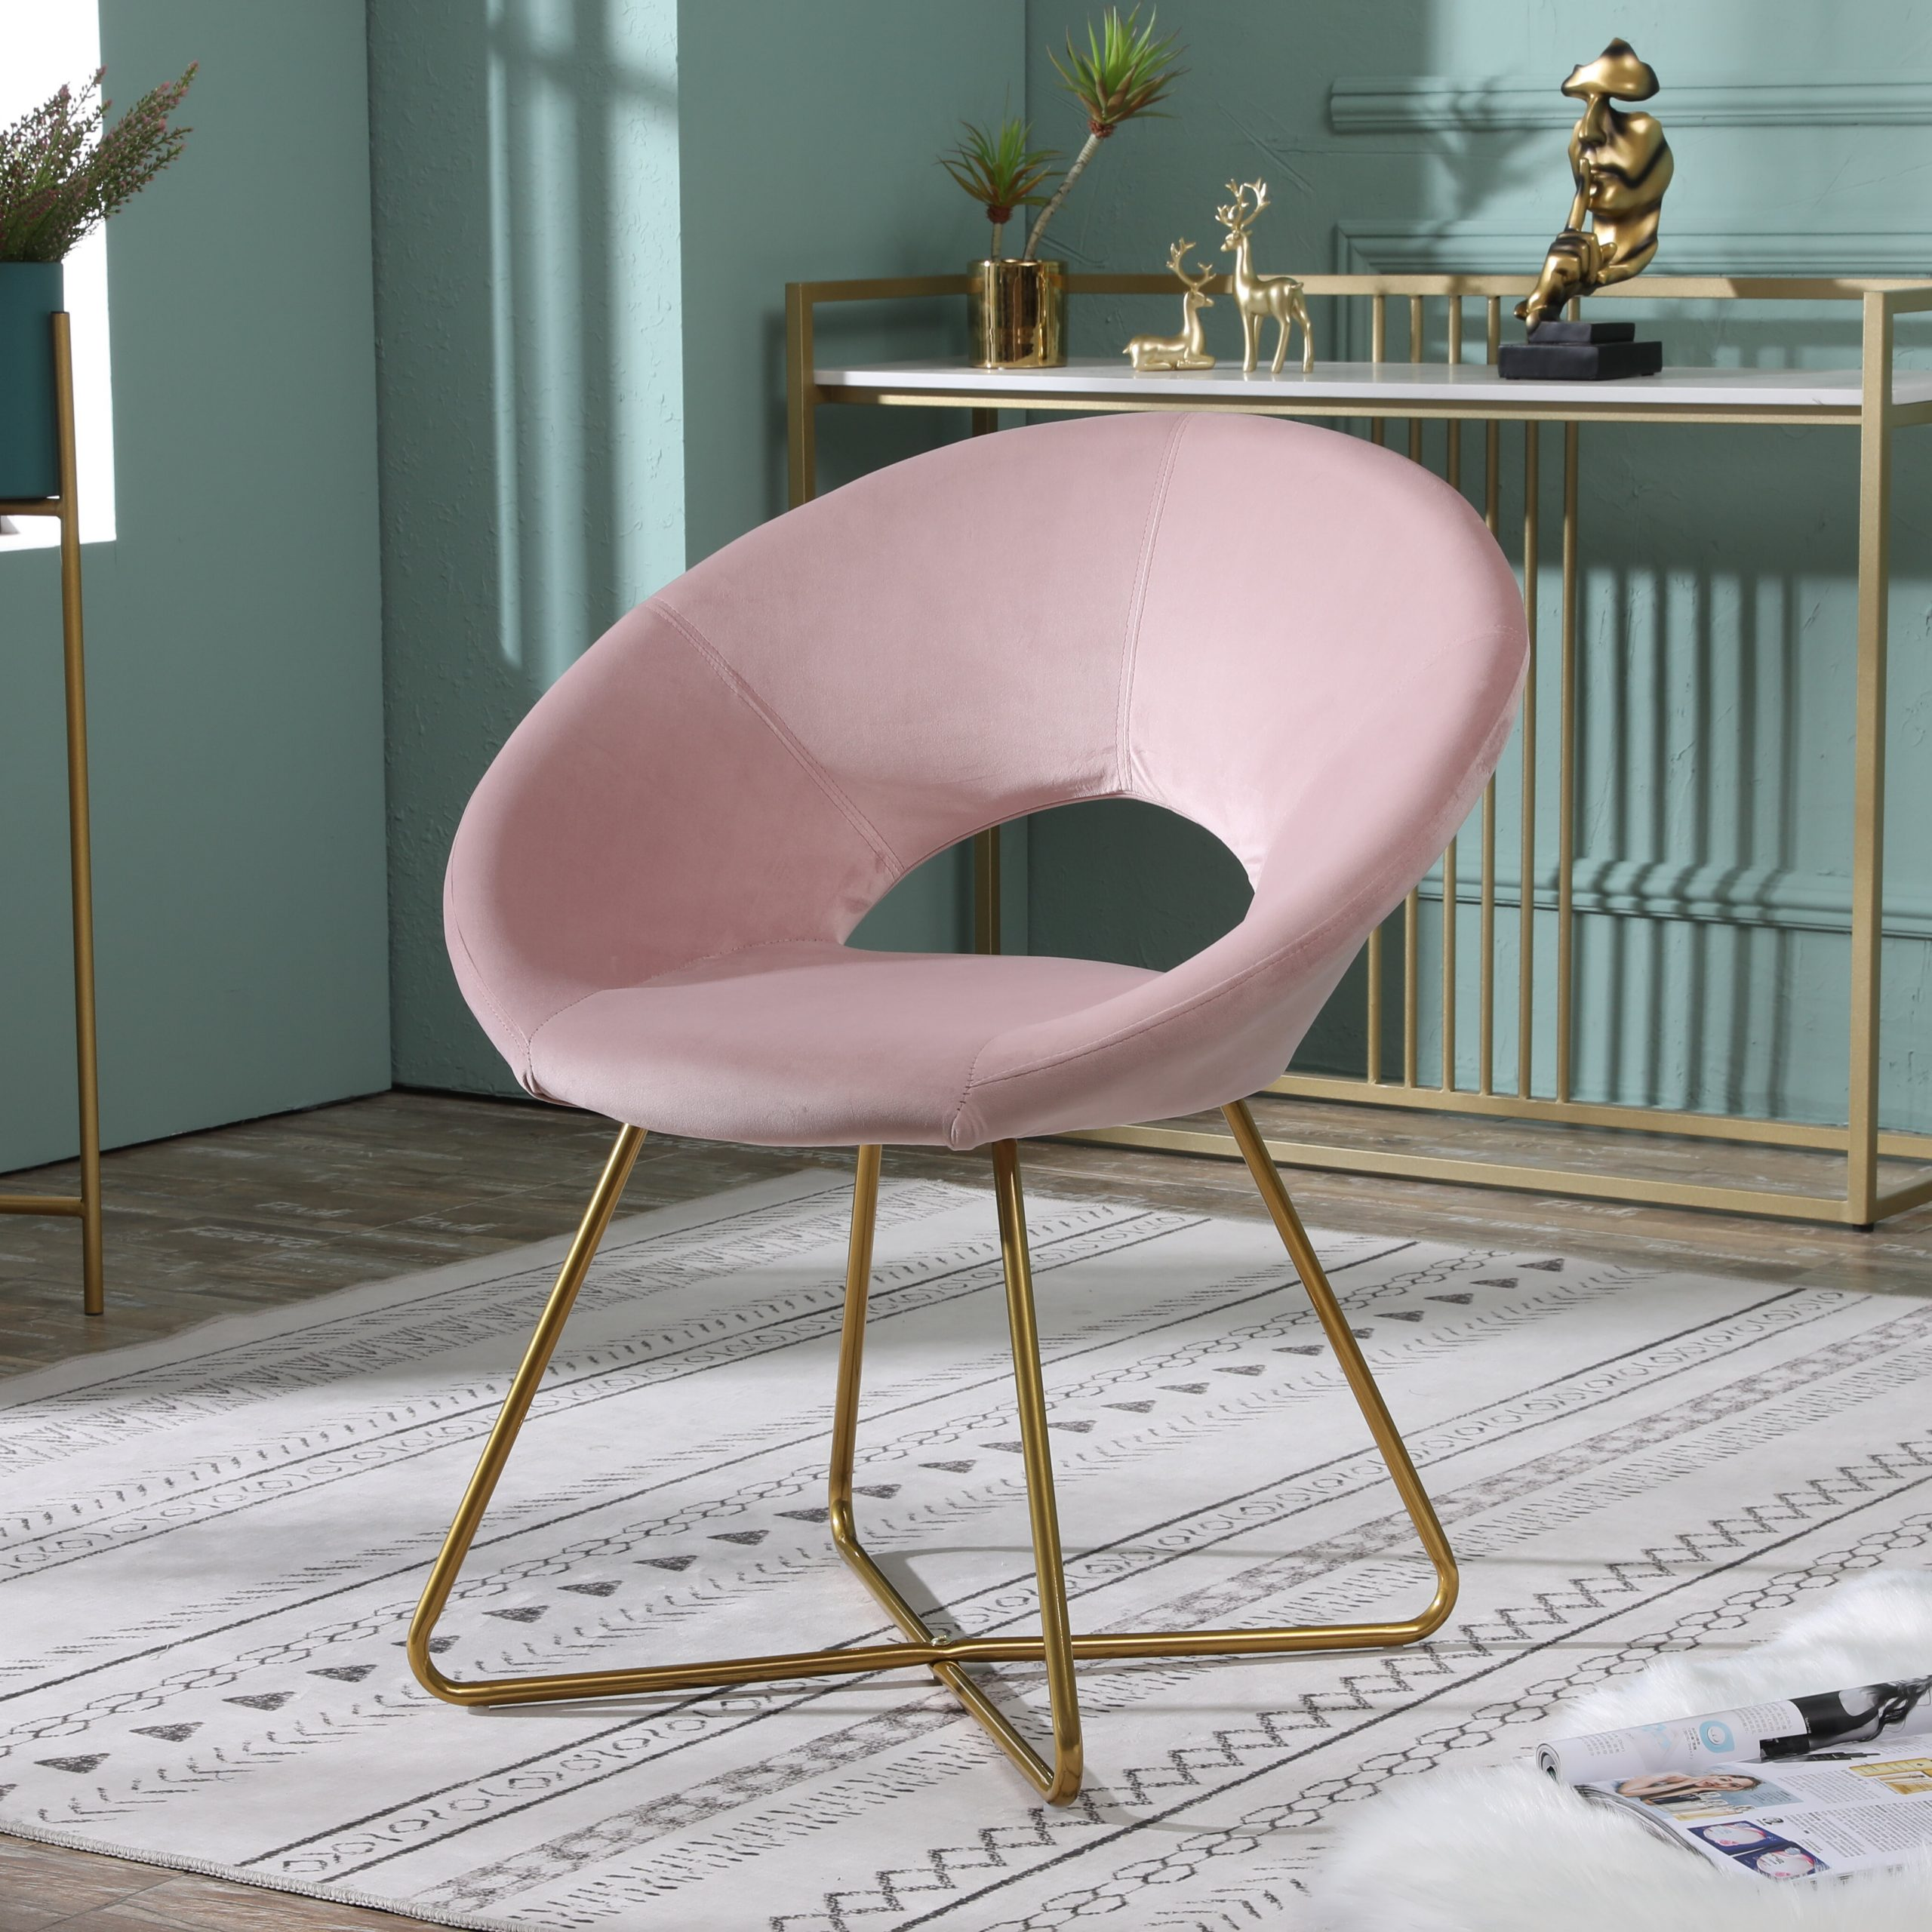 Office Floor Mat Accent Chairs You'Ll Love In 2021 | Wayfair In Grinnell Silky Velvet Papasan Chairs (View 3 of 15)